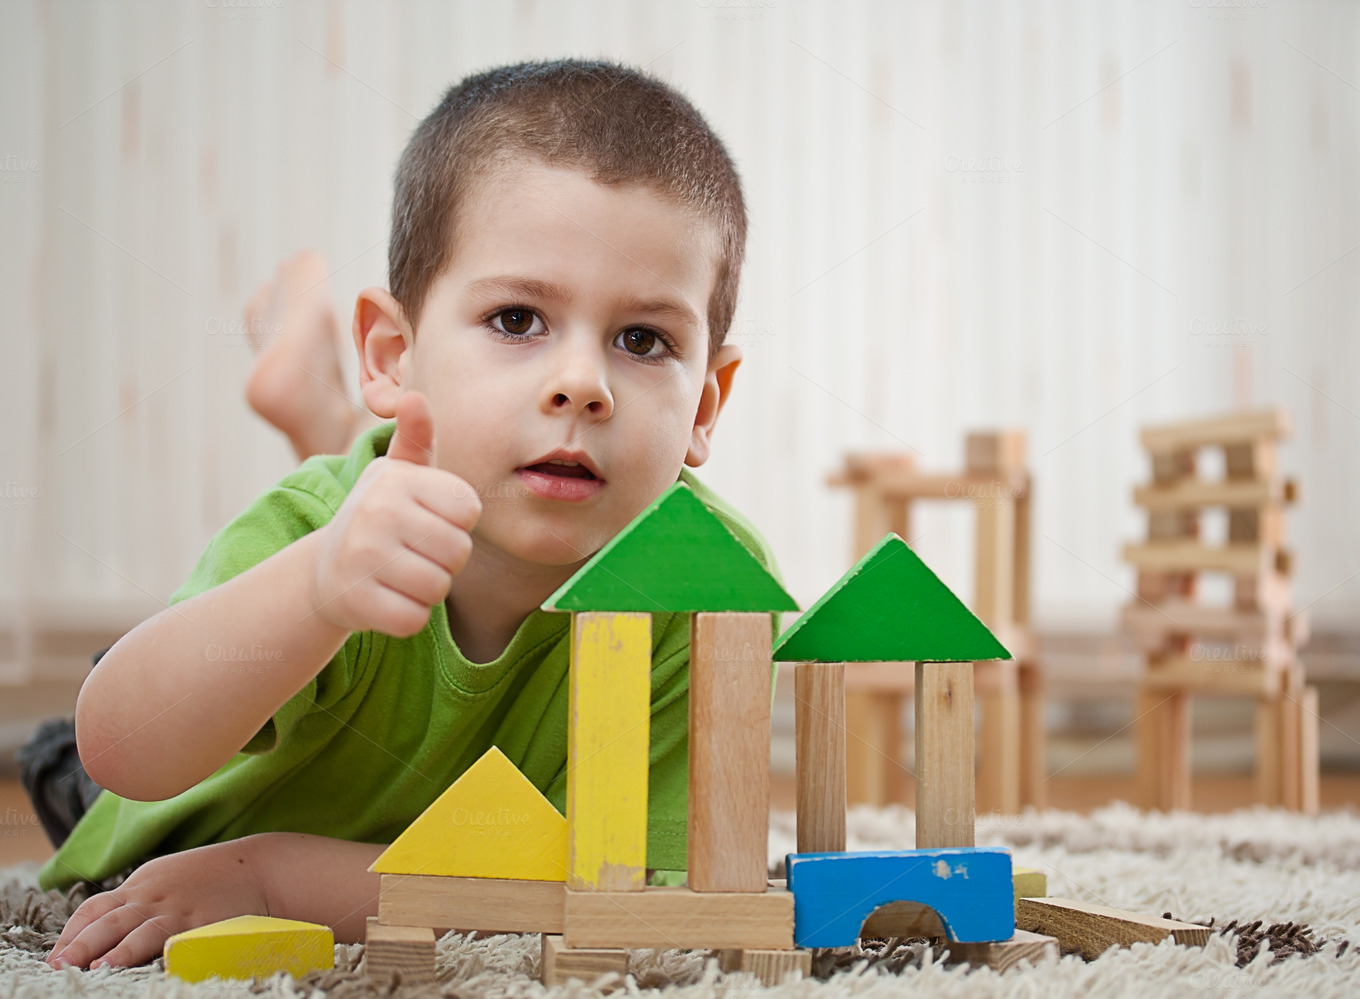 Boy playing with blocks ~ People Photos on Creative Market